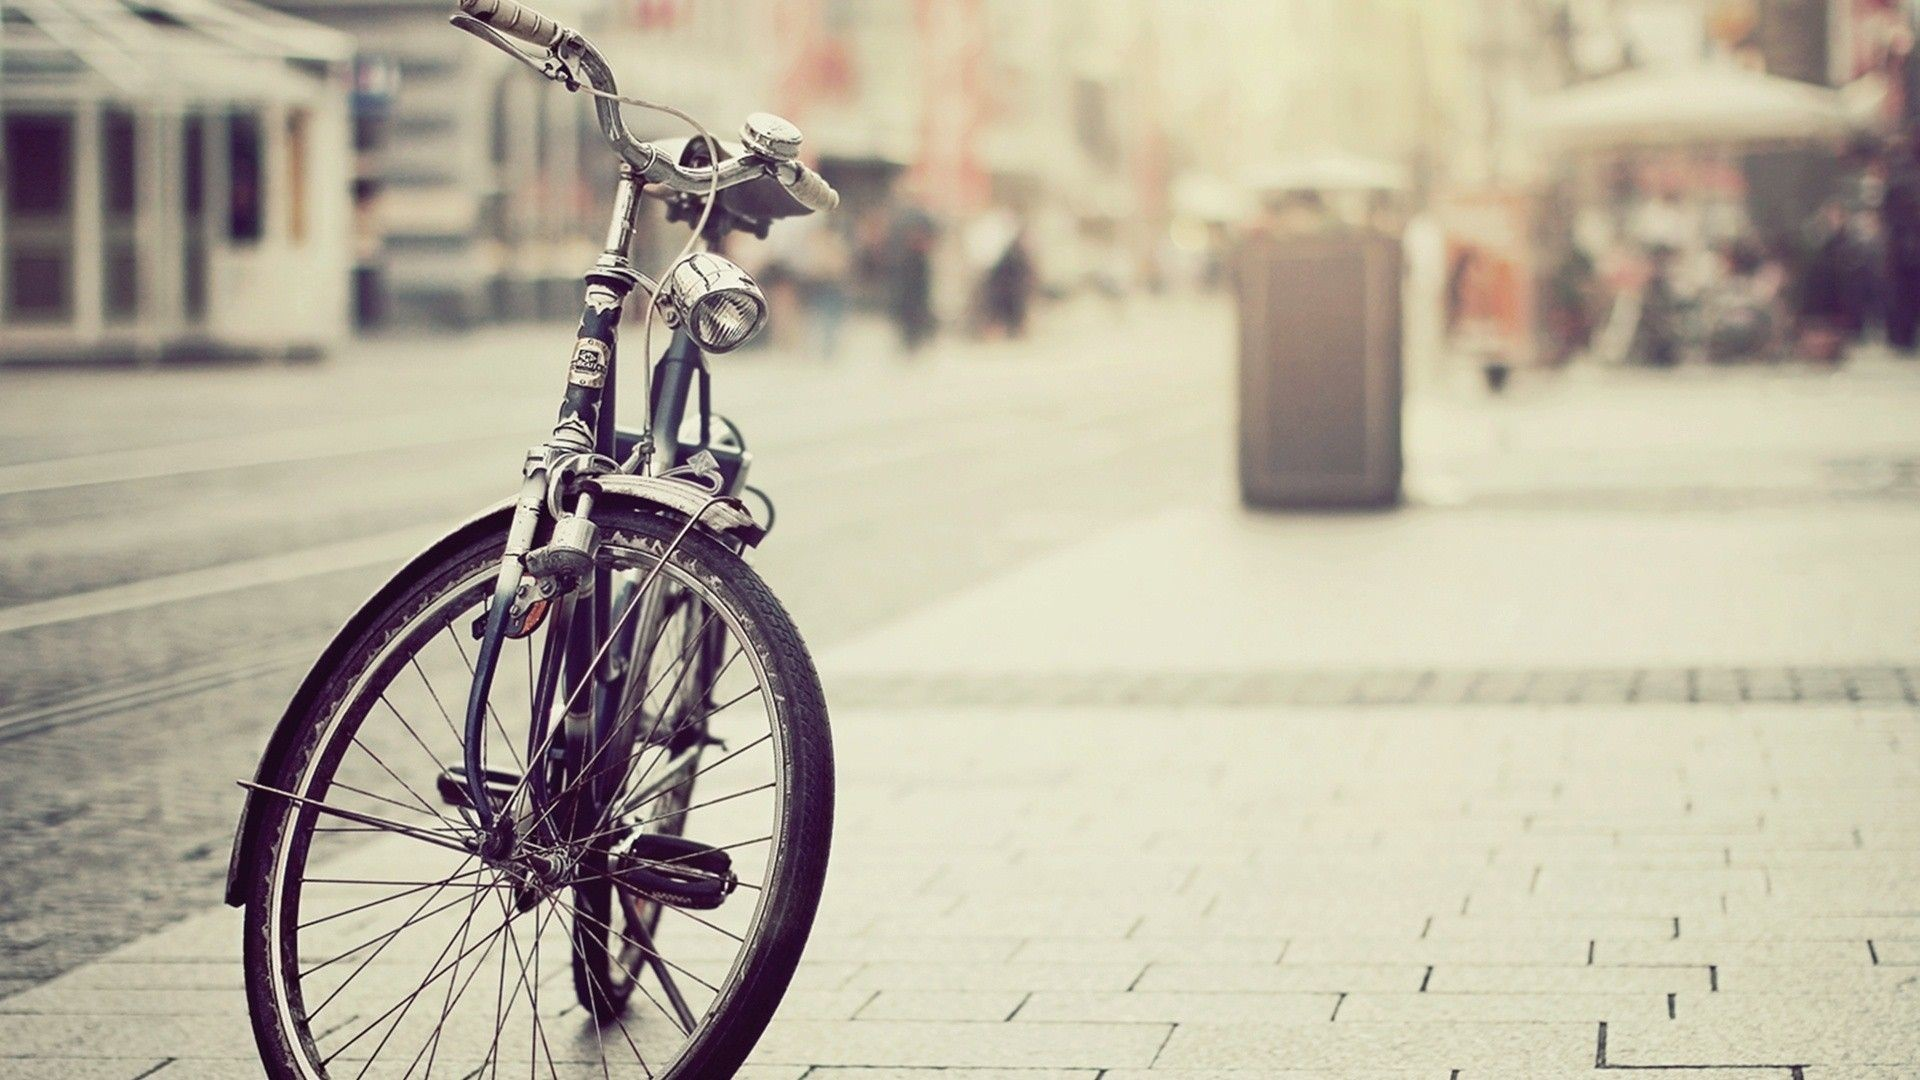 Res: 1920x1080, Bicycle Wallpaper HD Wallpapers Pulse